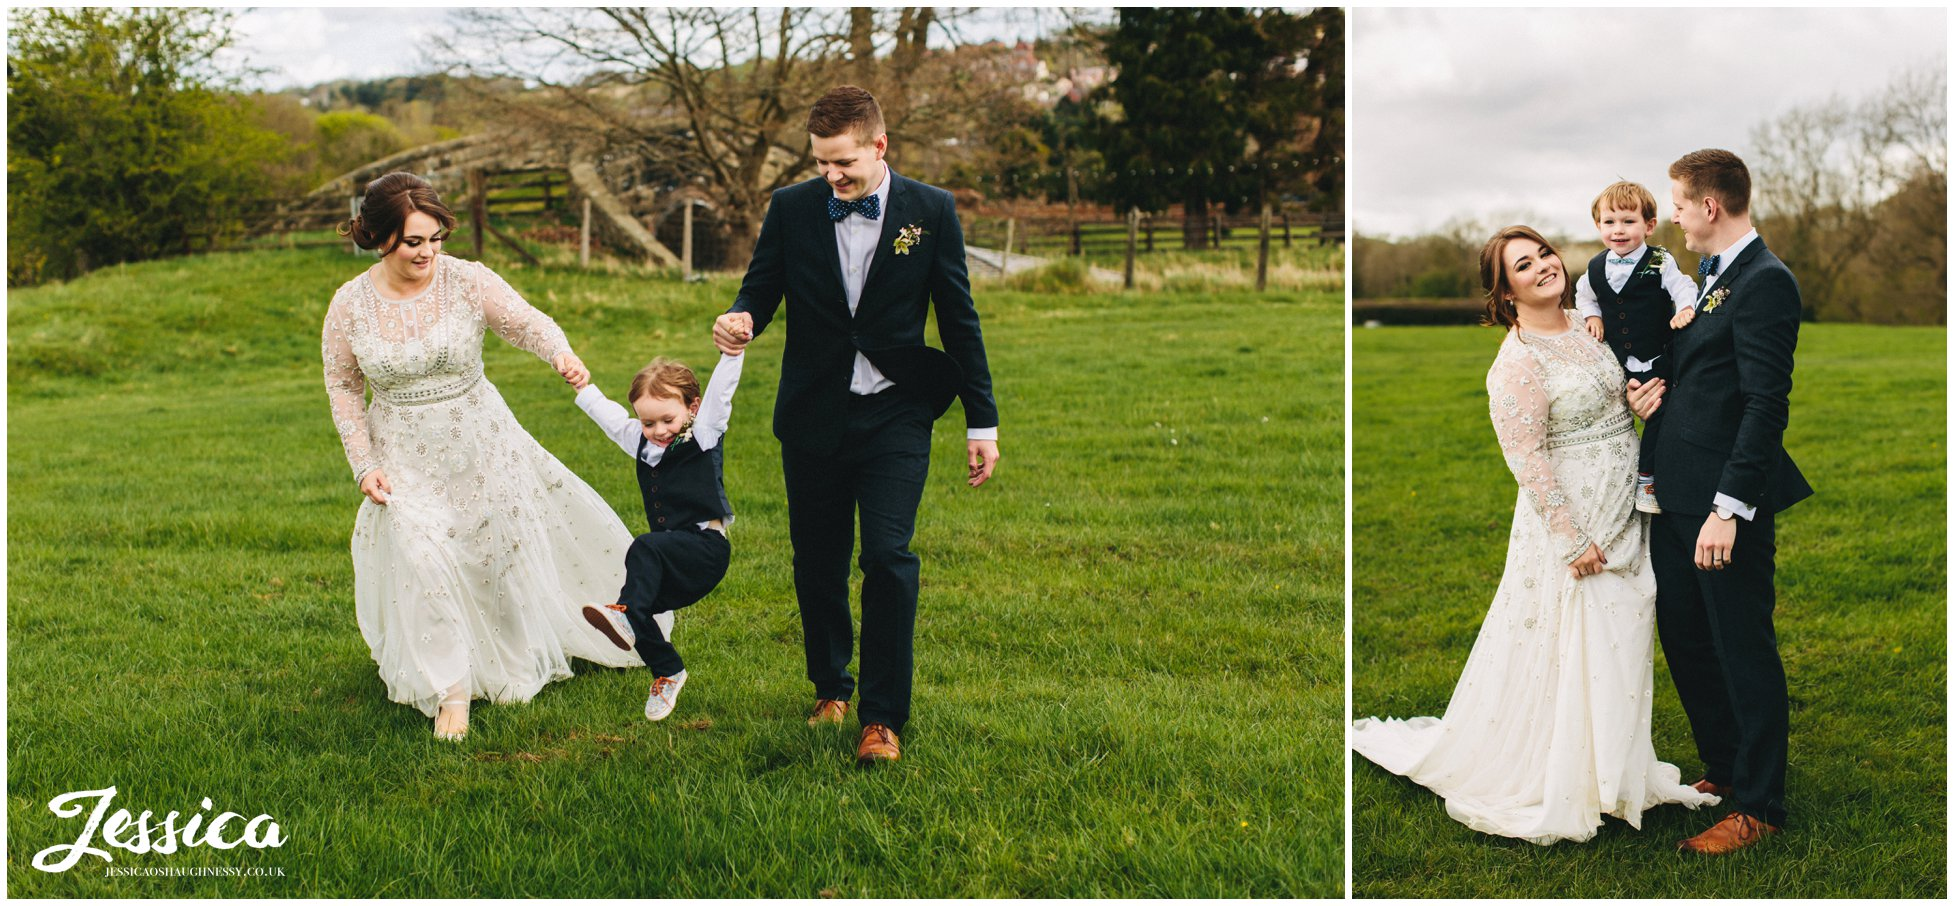 bride, groom & their son in the field at tower hill barns wedding venue, north wales